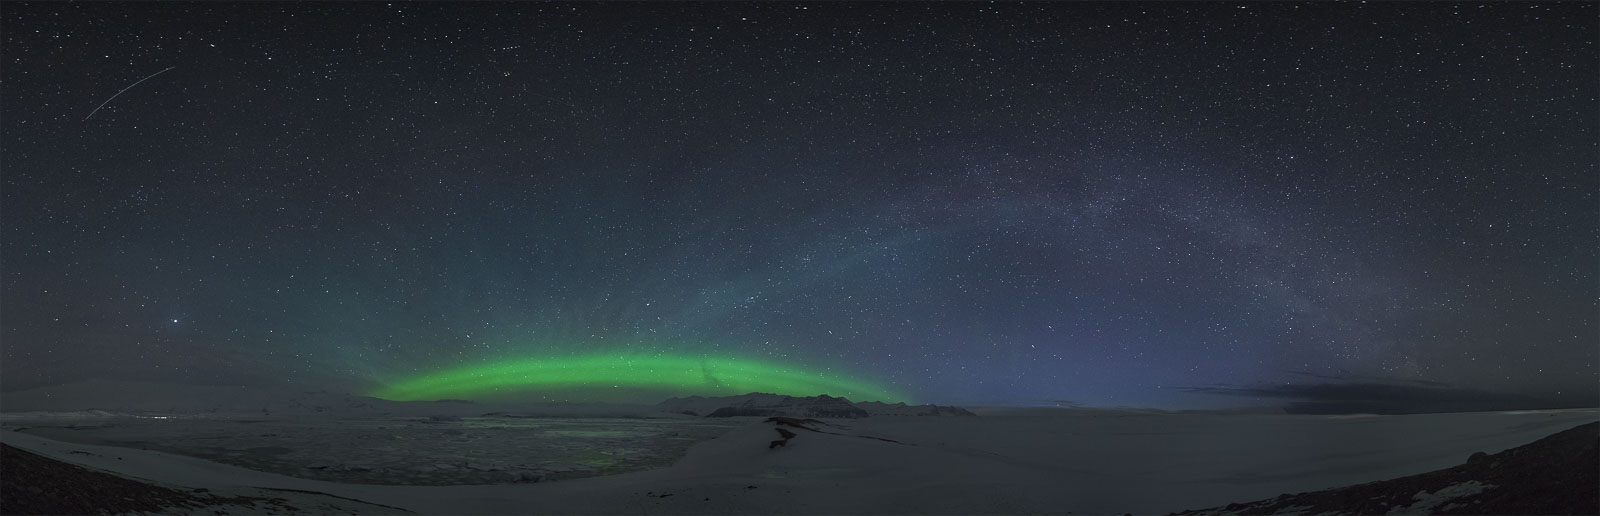 360° panoramic shot of the jökulsárlón glacier lagoon with the aurorabow and the milkybow at once